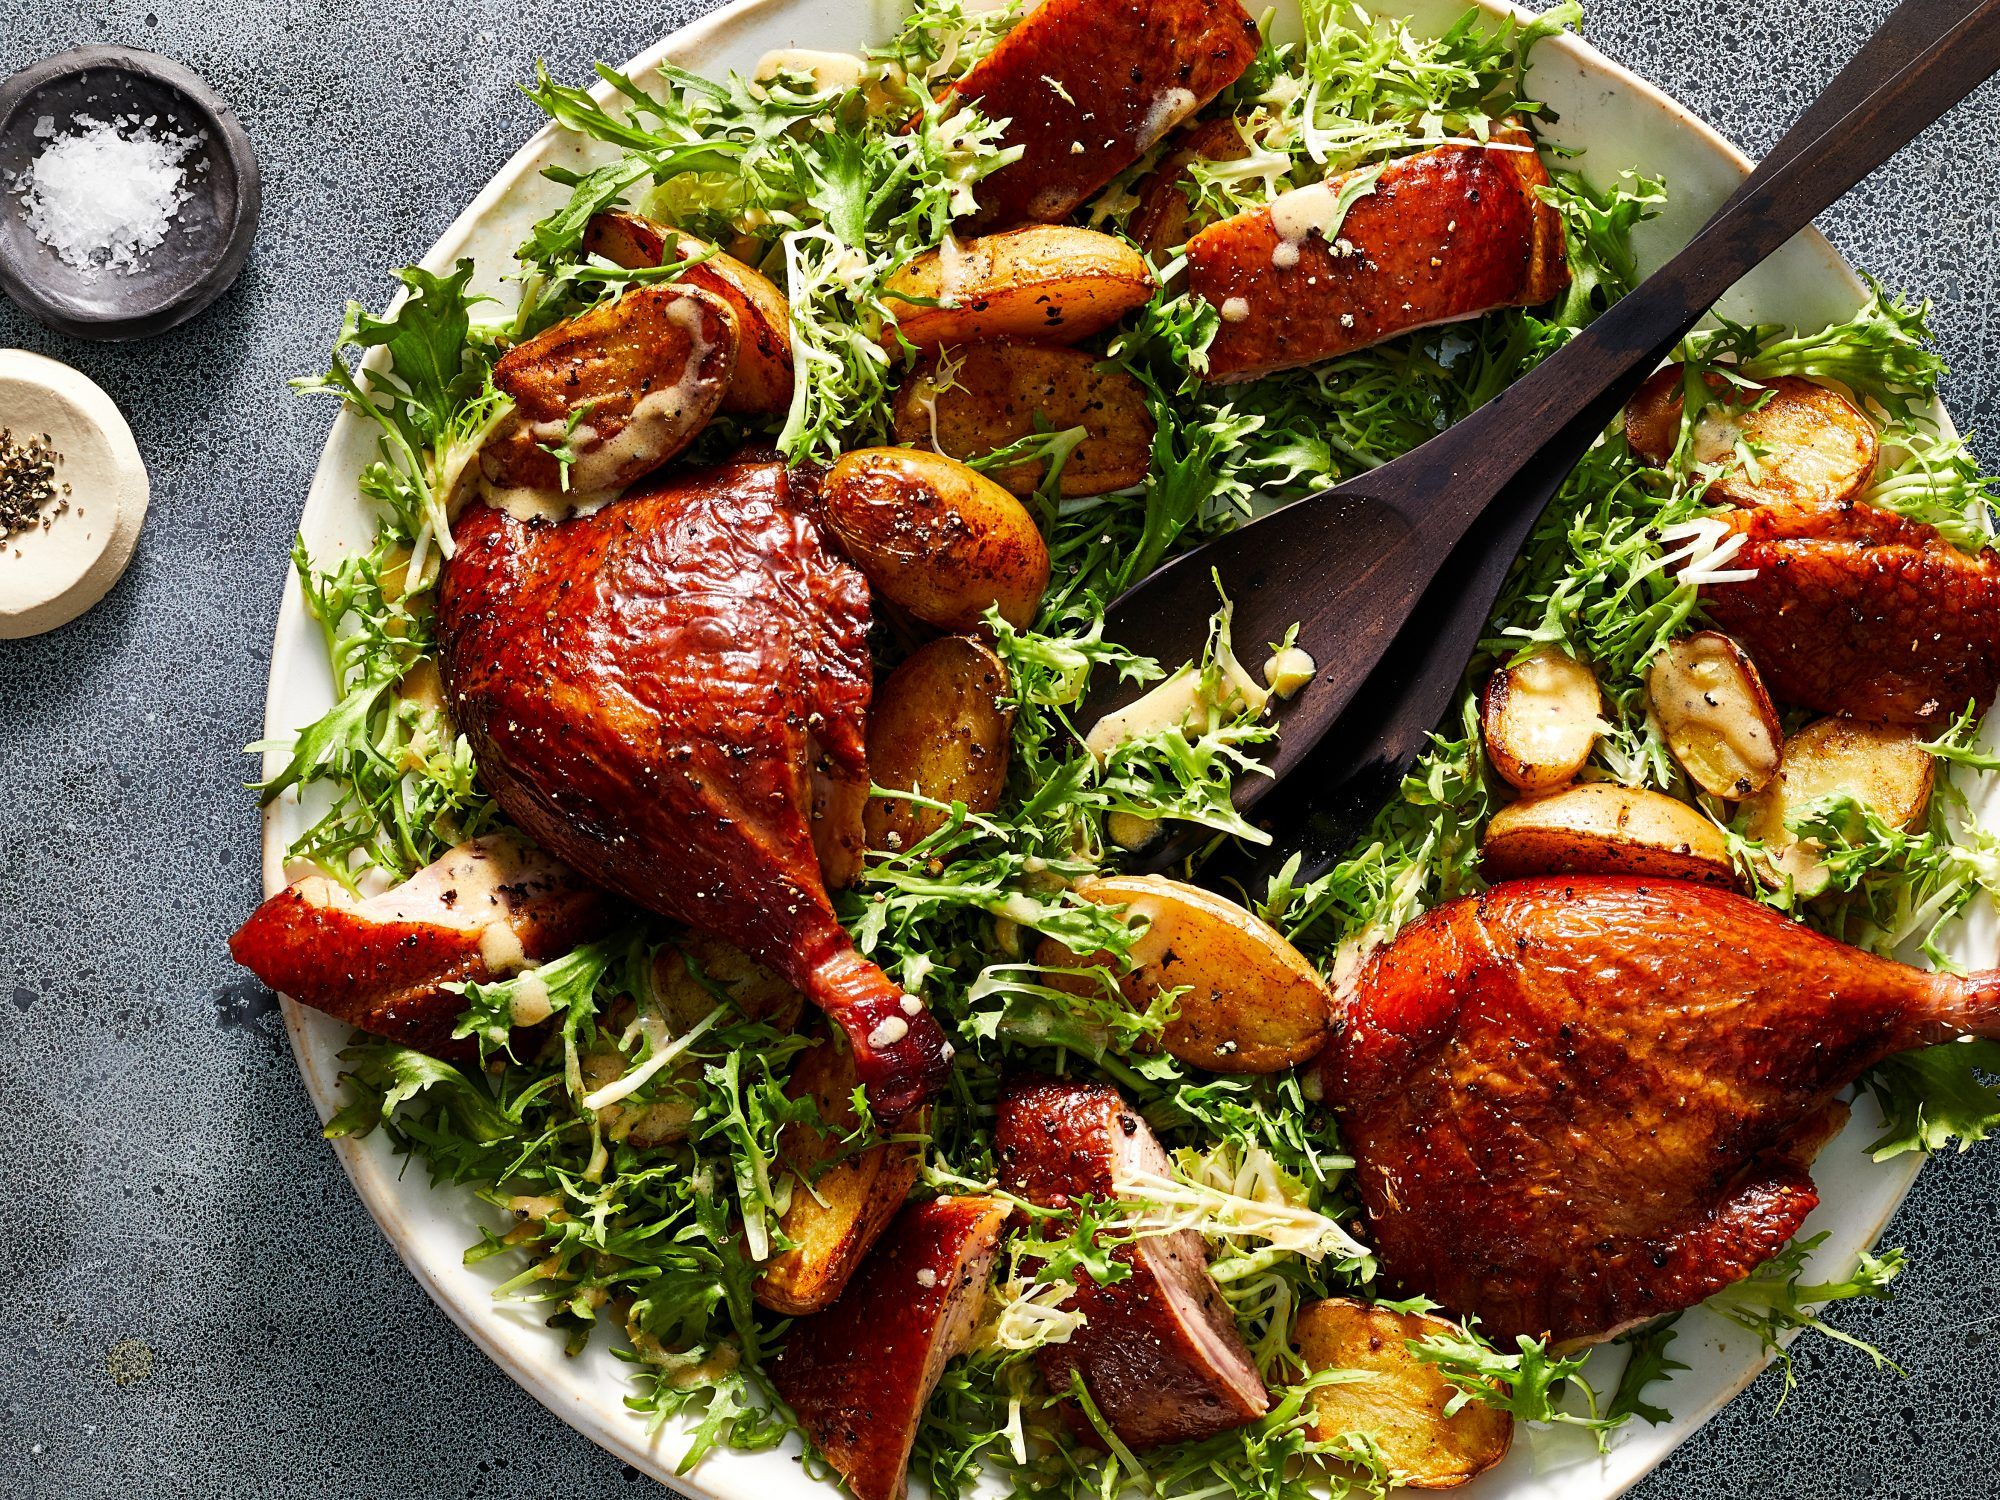 Smoked Duck with Potatoes and Frisée